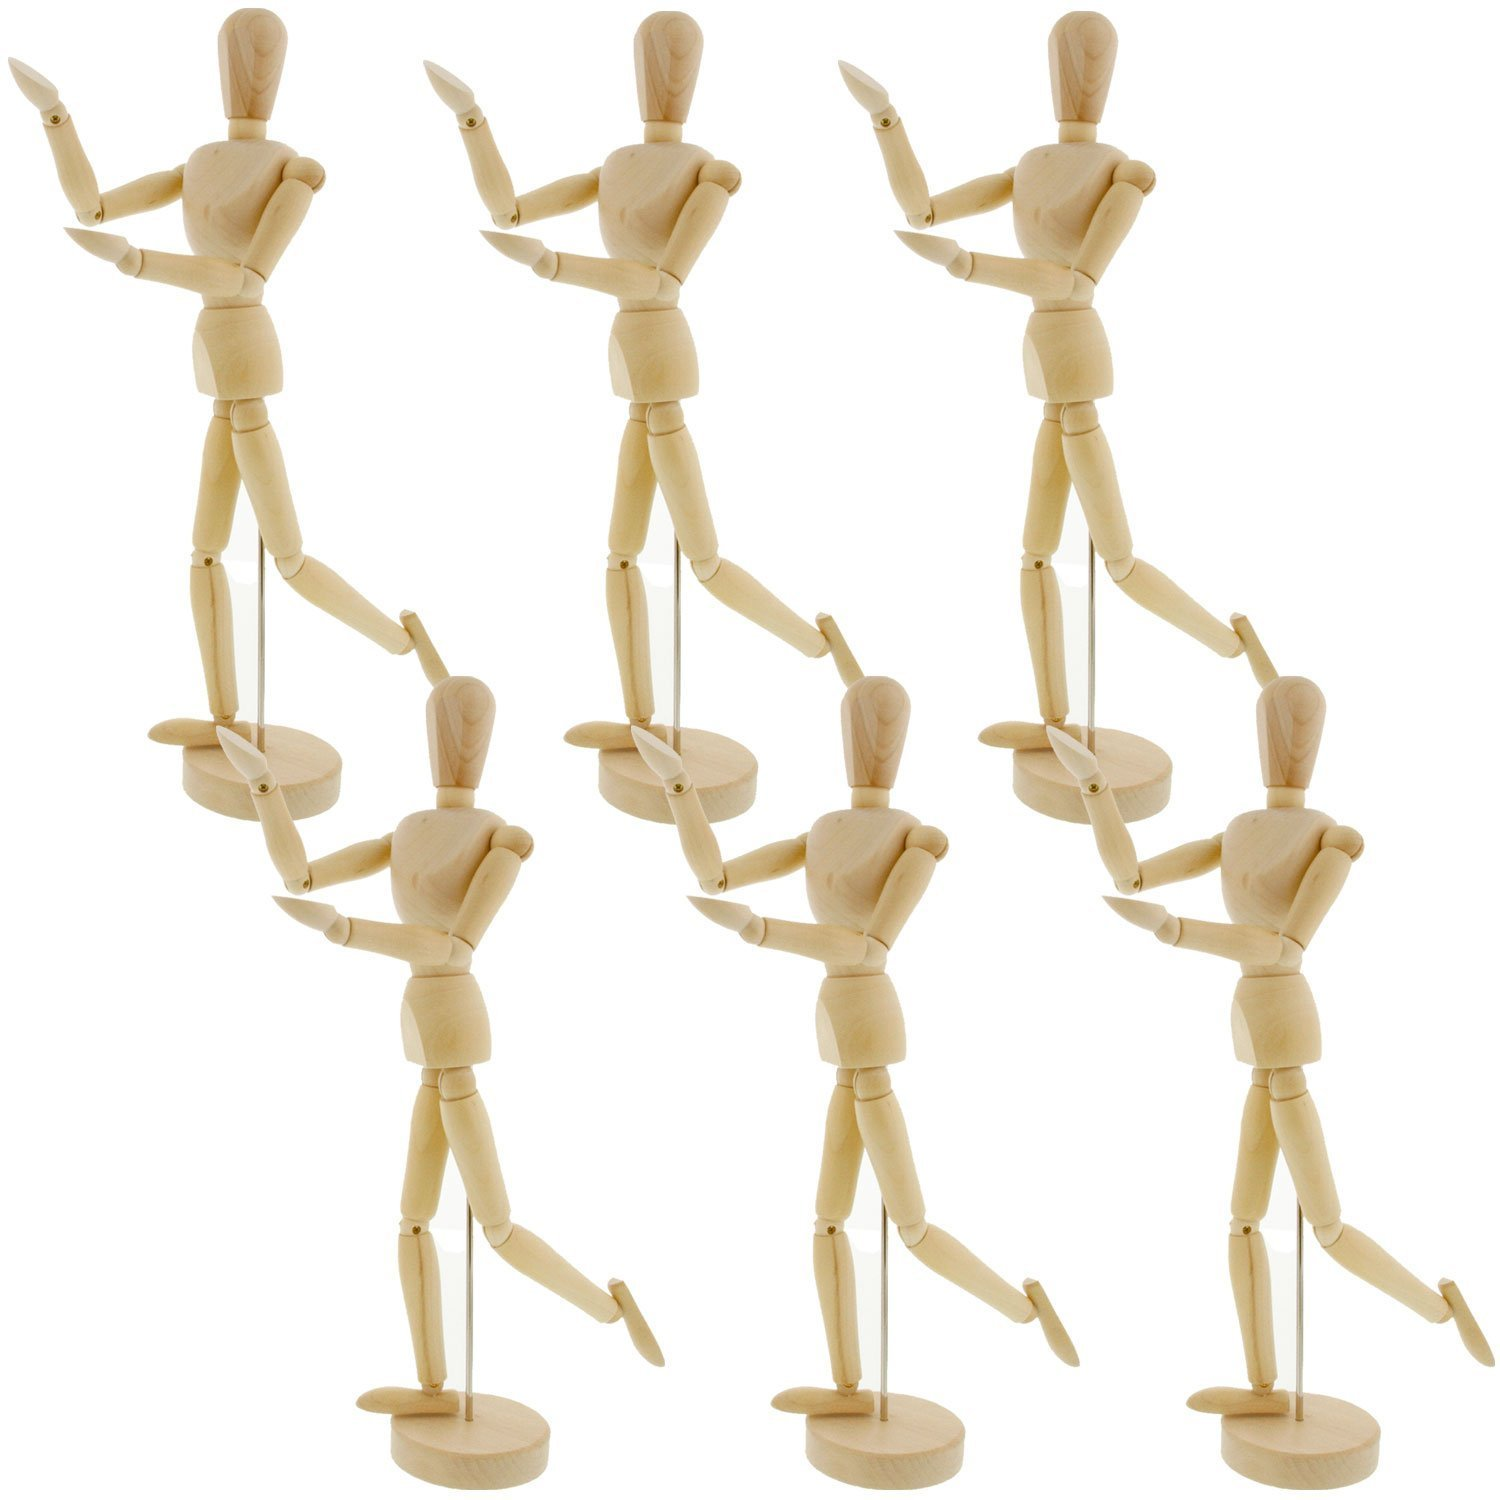 US Art Supply Wood 12'' Artist Drawing Manikin Articulated Mannequin with Base and Flexible Body - Perfect For Drawing the Human Figure (12'' Male) Pack of 6 Manikins